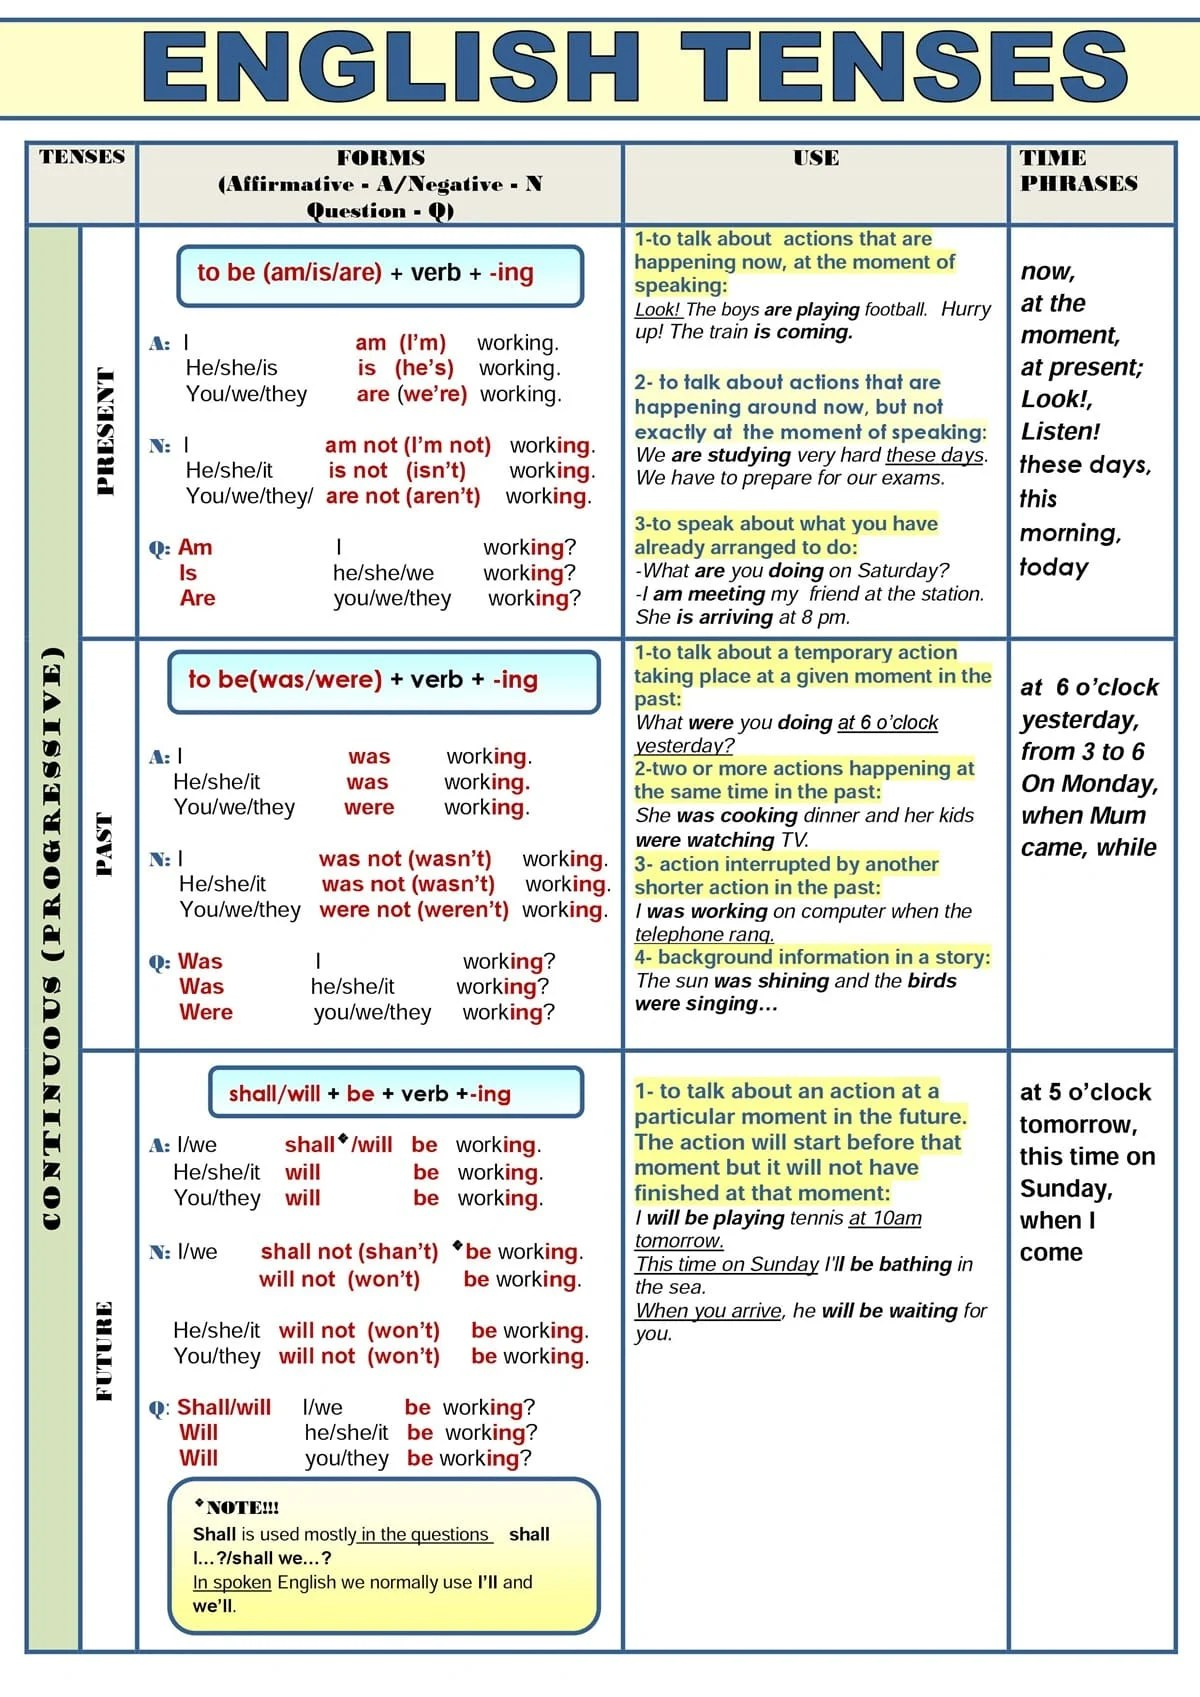 tenses in english A reader questions the veracity of my saying that english has three main tenses: most modern grammar writers argue that there are only two tenses in english, past and present we talk about the future using various modal verbs, including will, because we are usually talking about our perception of .